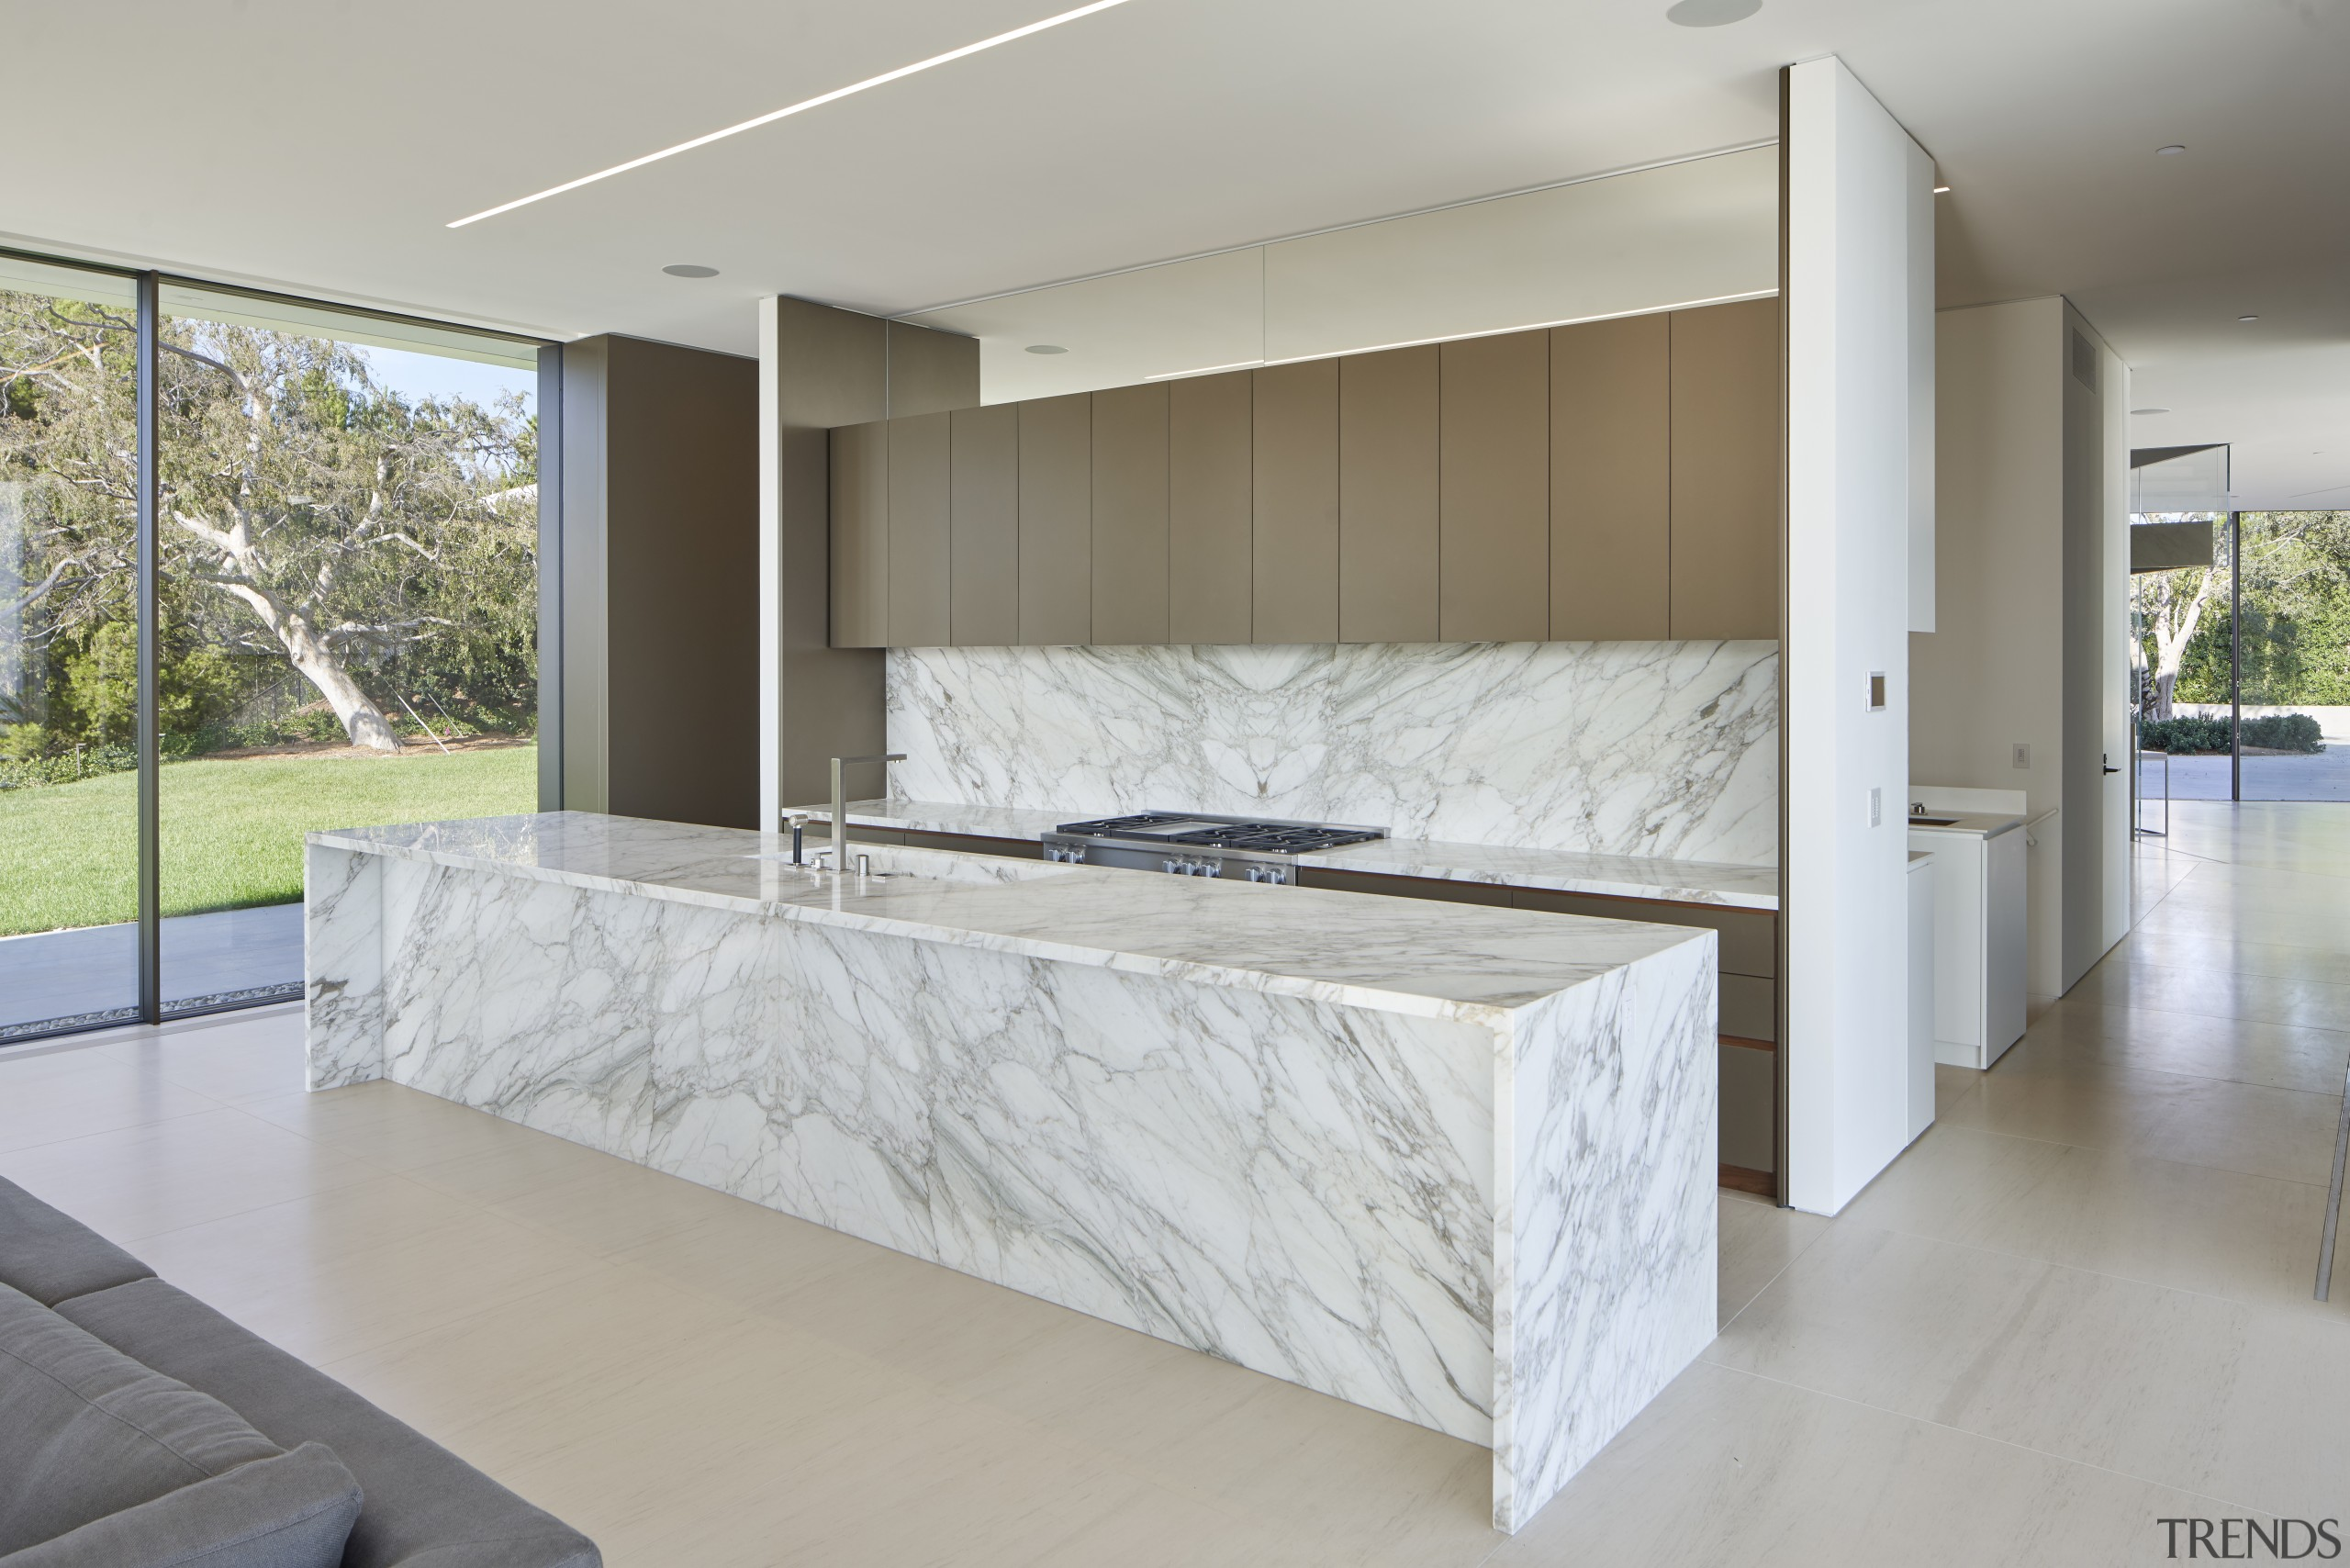 Balancing scale, views and comfort was the biggest architecture, building, cabinetry, ceiling, concrete, countertop, design, floor, flooring, furniture, glass, home, house, interior design, living room, property, real estate, room, table, wall, gray